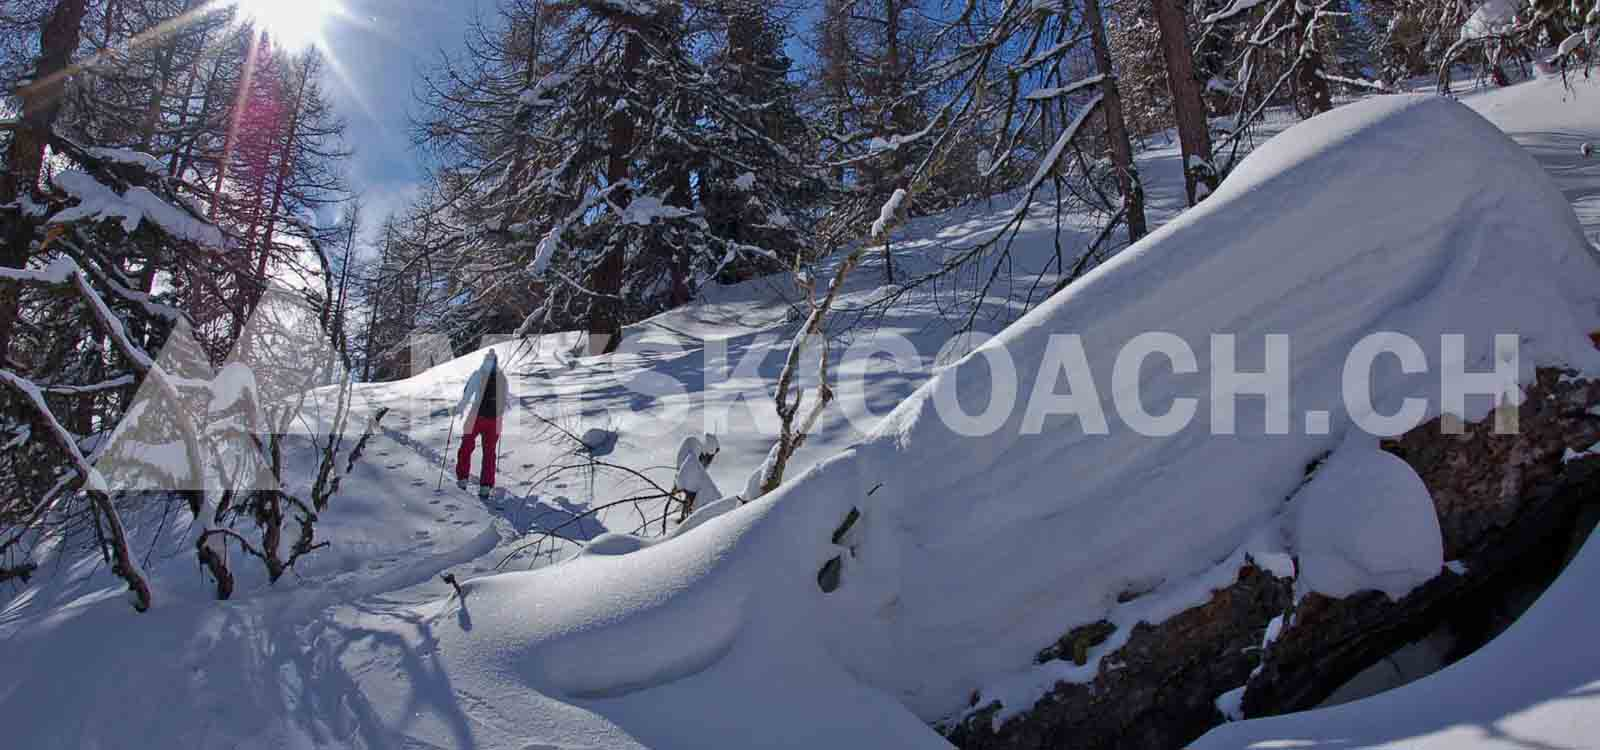 [:fr]Initiation randonnée à ski pour débutants ¦ MySkiCoach.ch[:en]Backcountry skiing instruction for beginners ¦ MySkiCoach.ch[:]